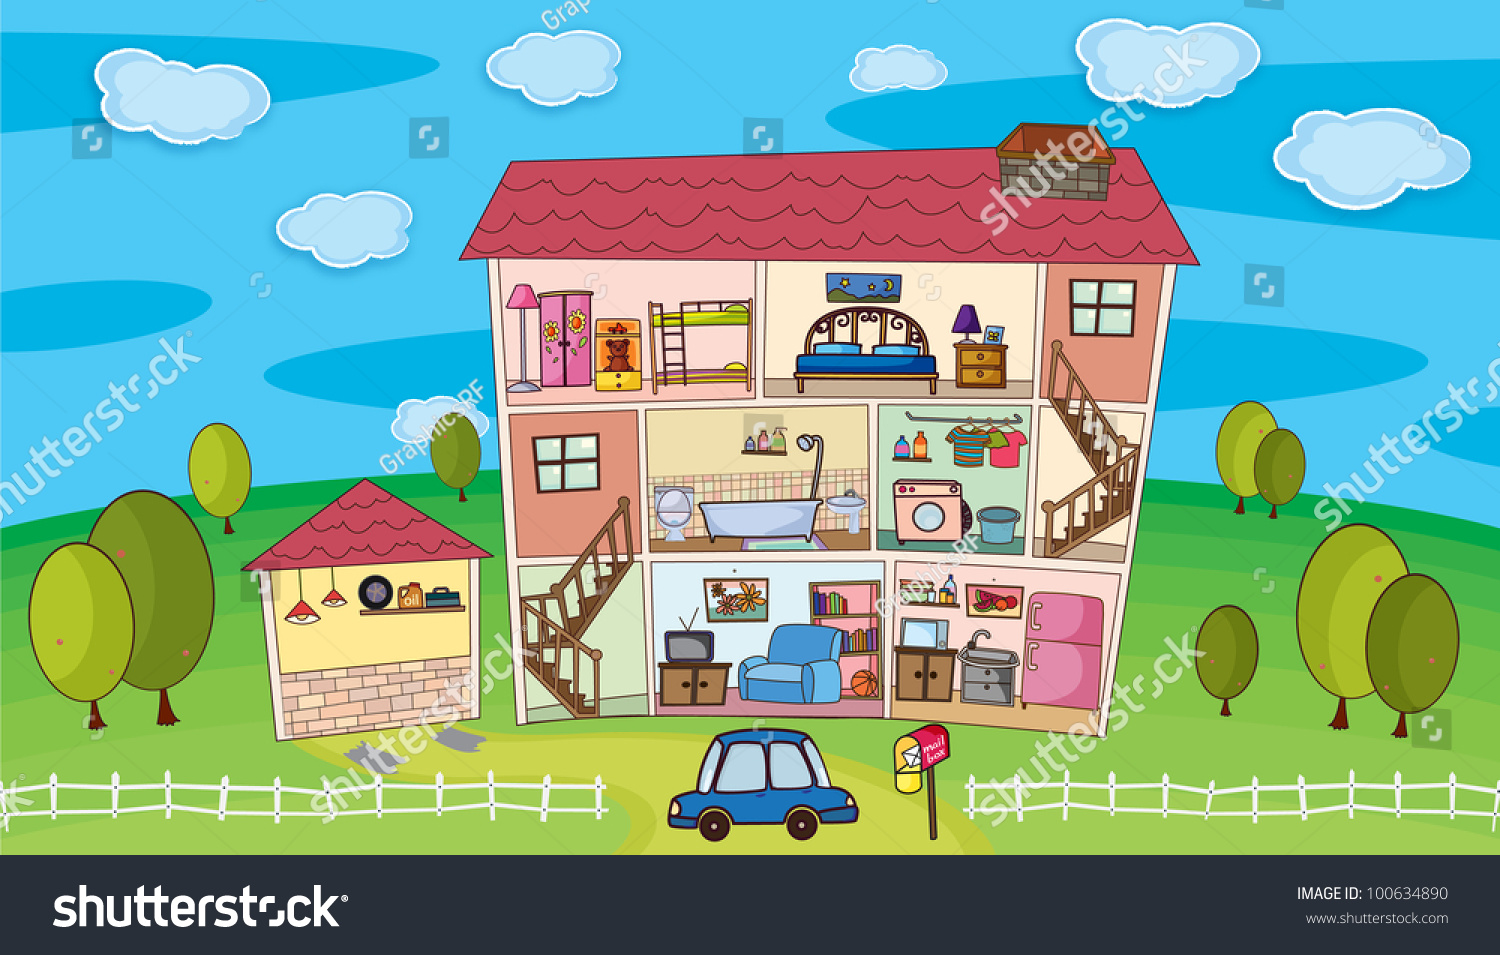 Illustration on inside a house eps vector format also available in my portfolio